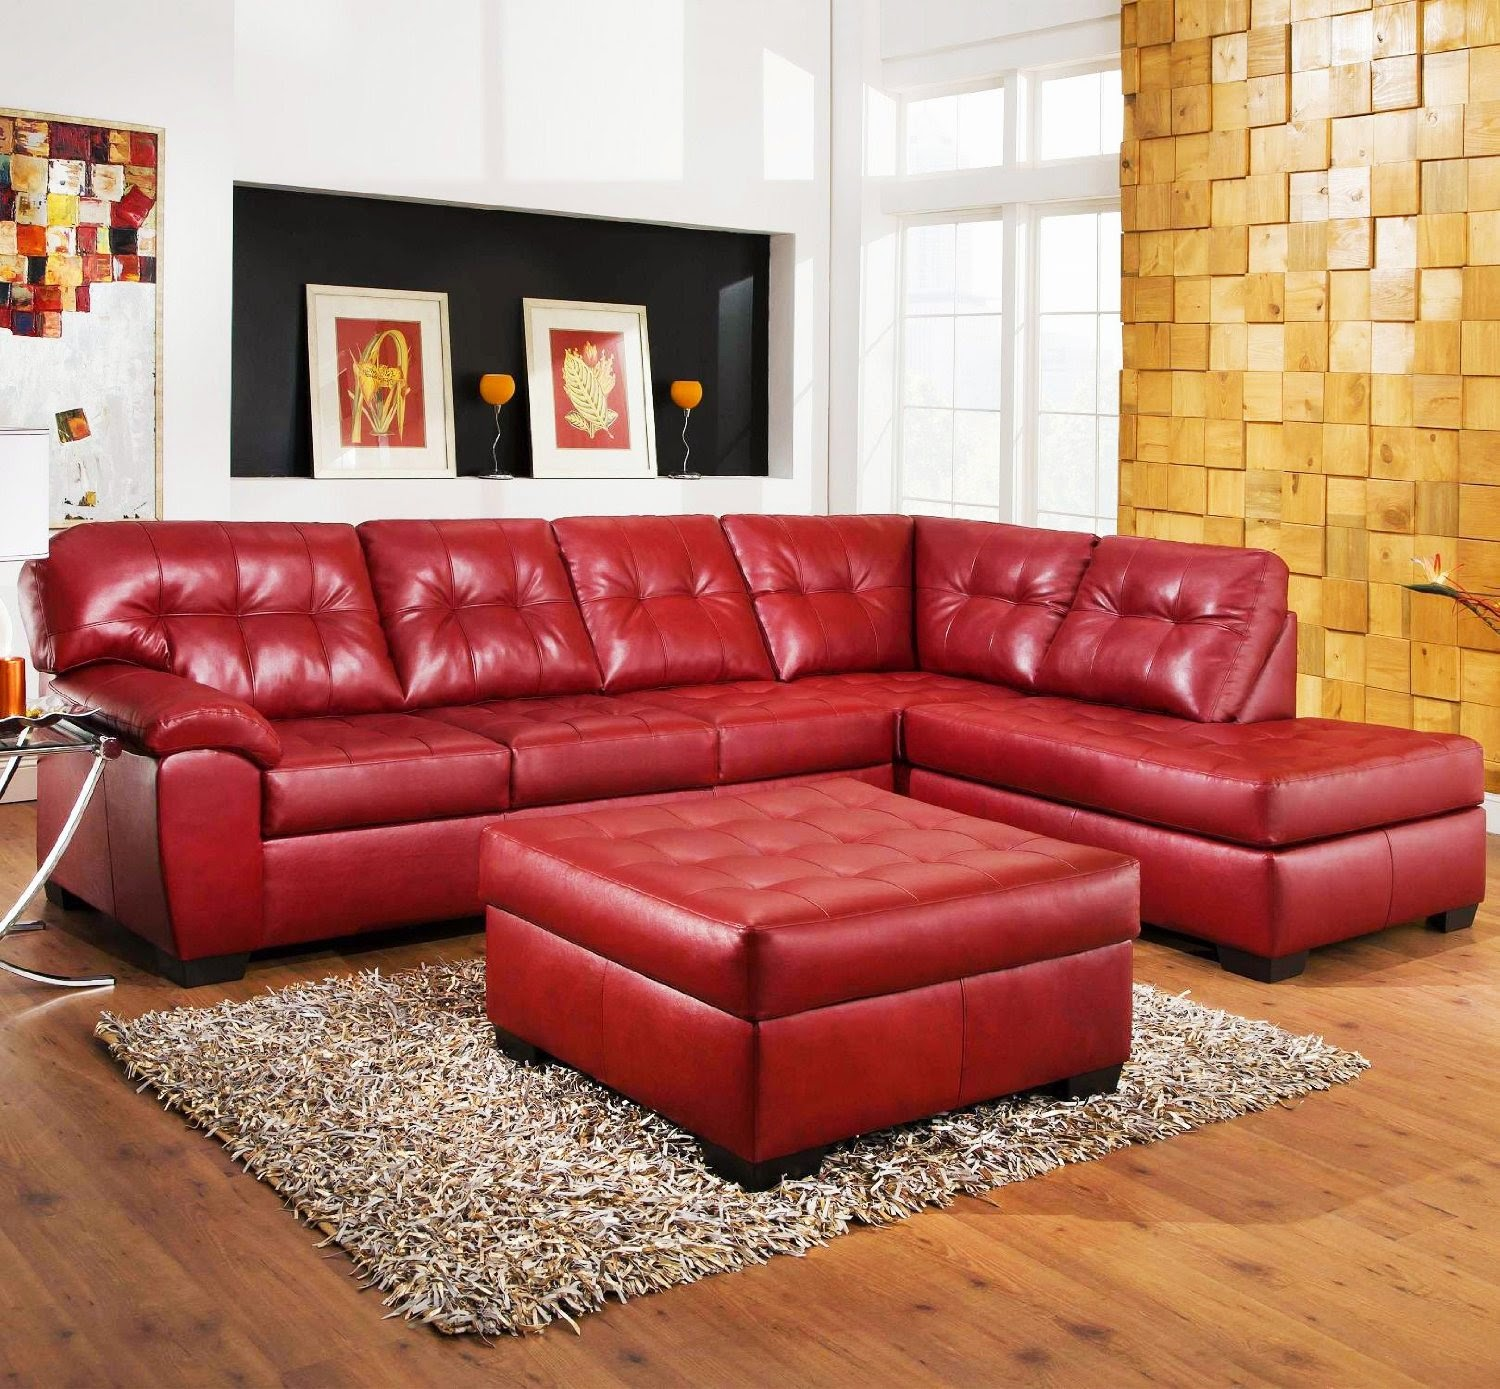 Sofa Red Leather: Red Couch: Red Leather Couch